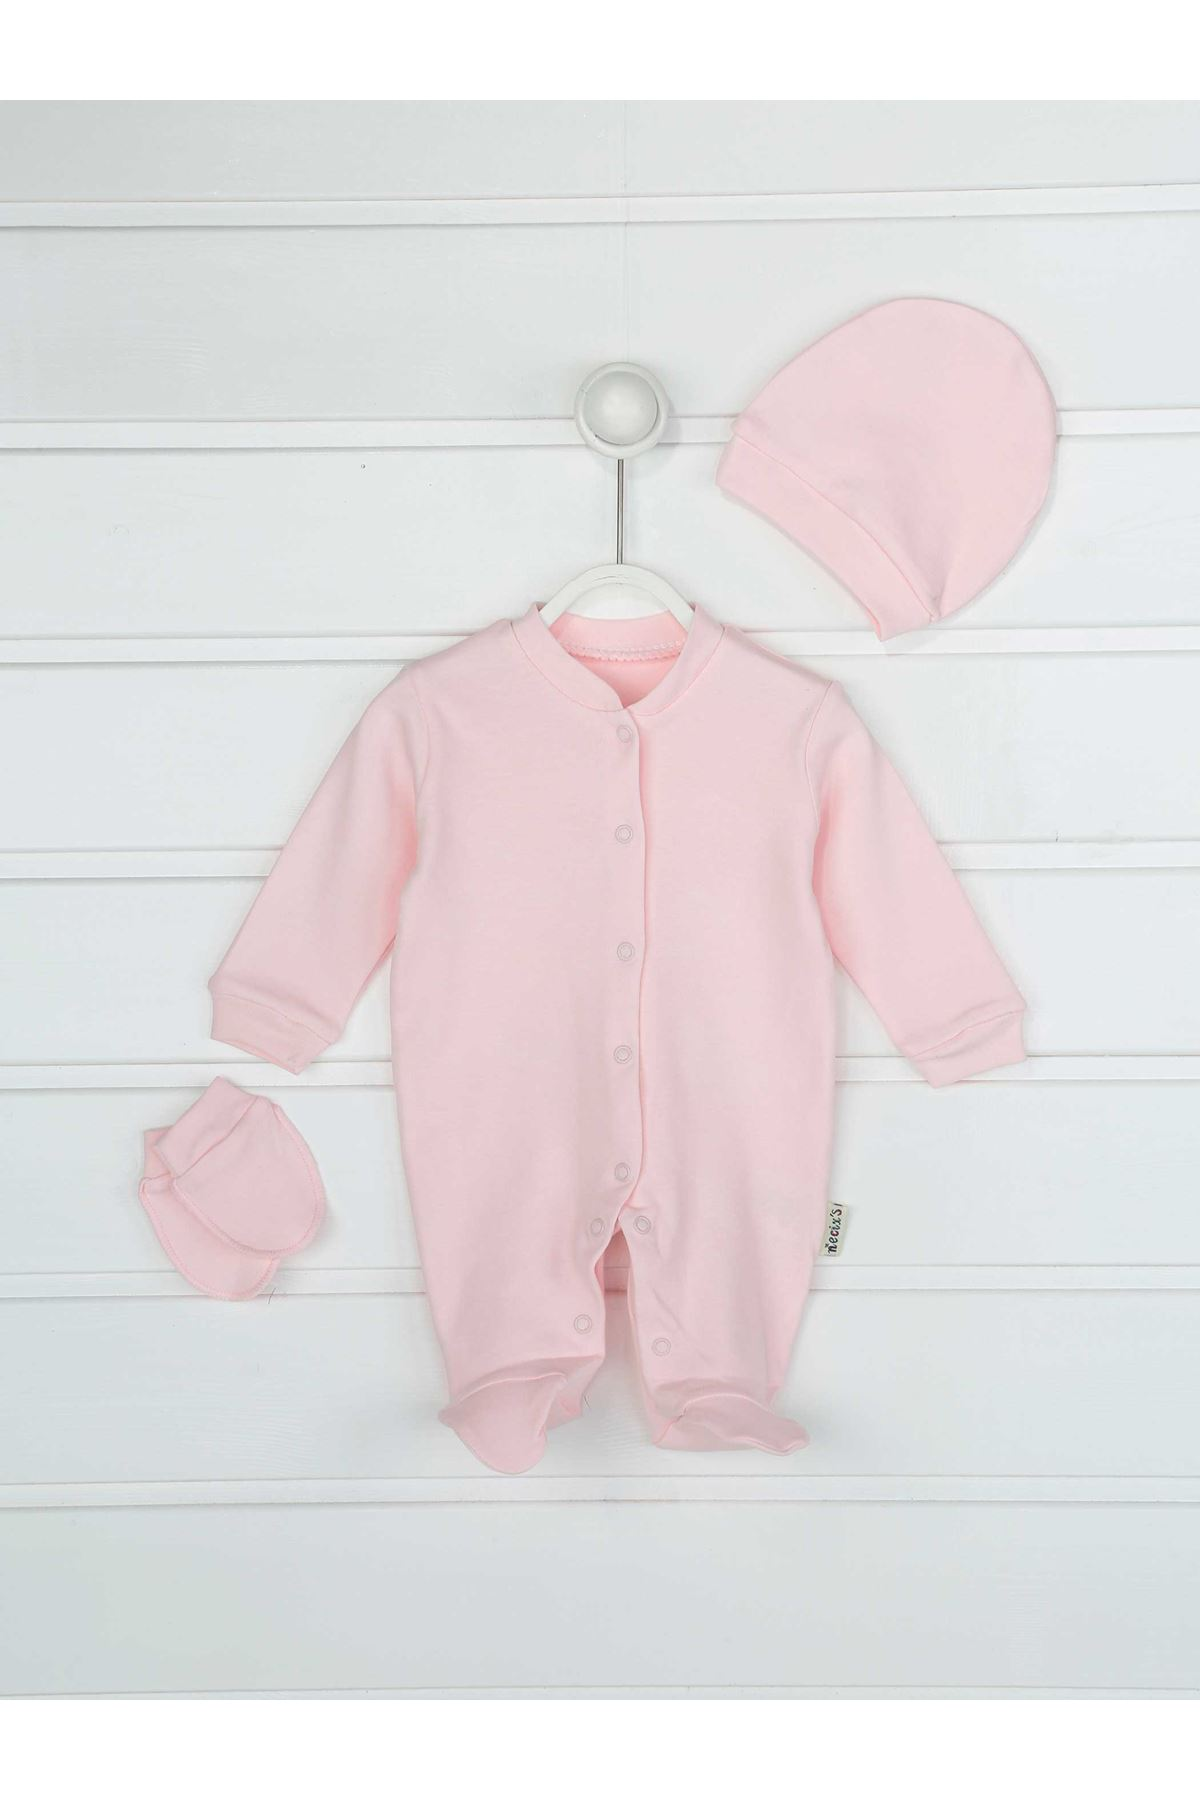 Pink baby girl solid color 3-piece suit overalls gloves hat infants cotton comfortable daily newborn hospital outlet models